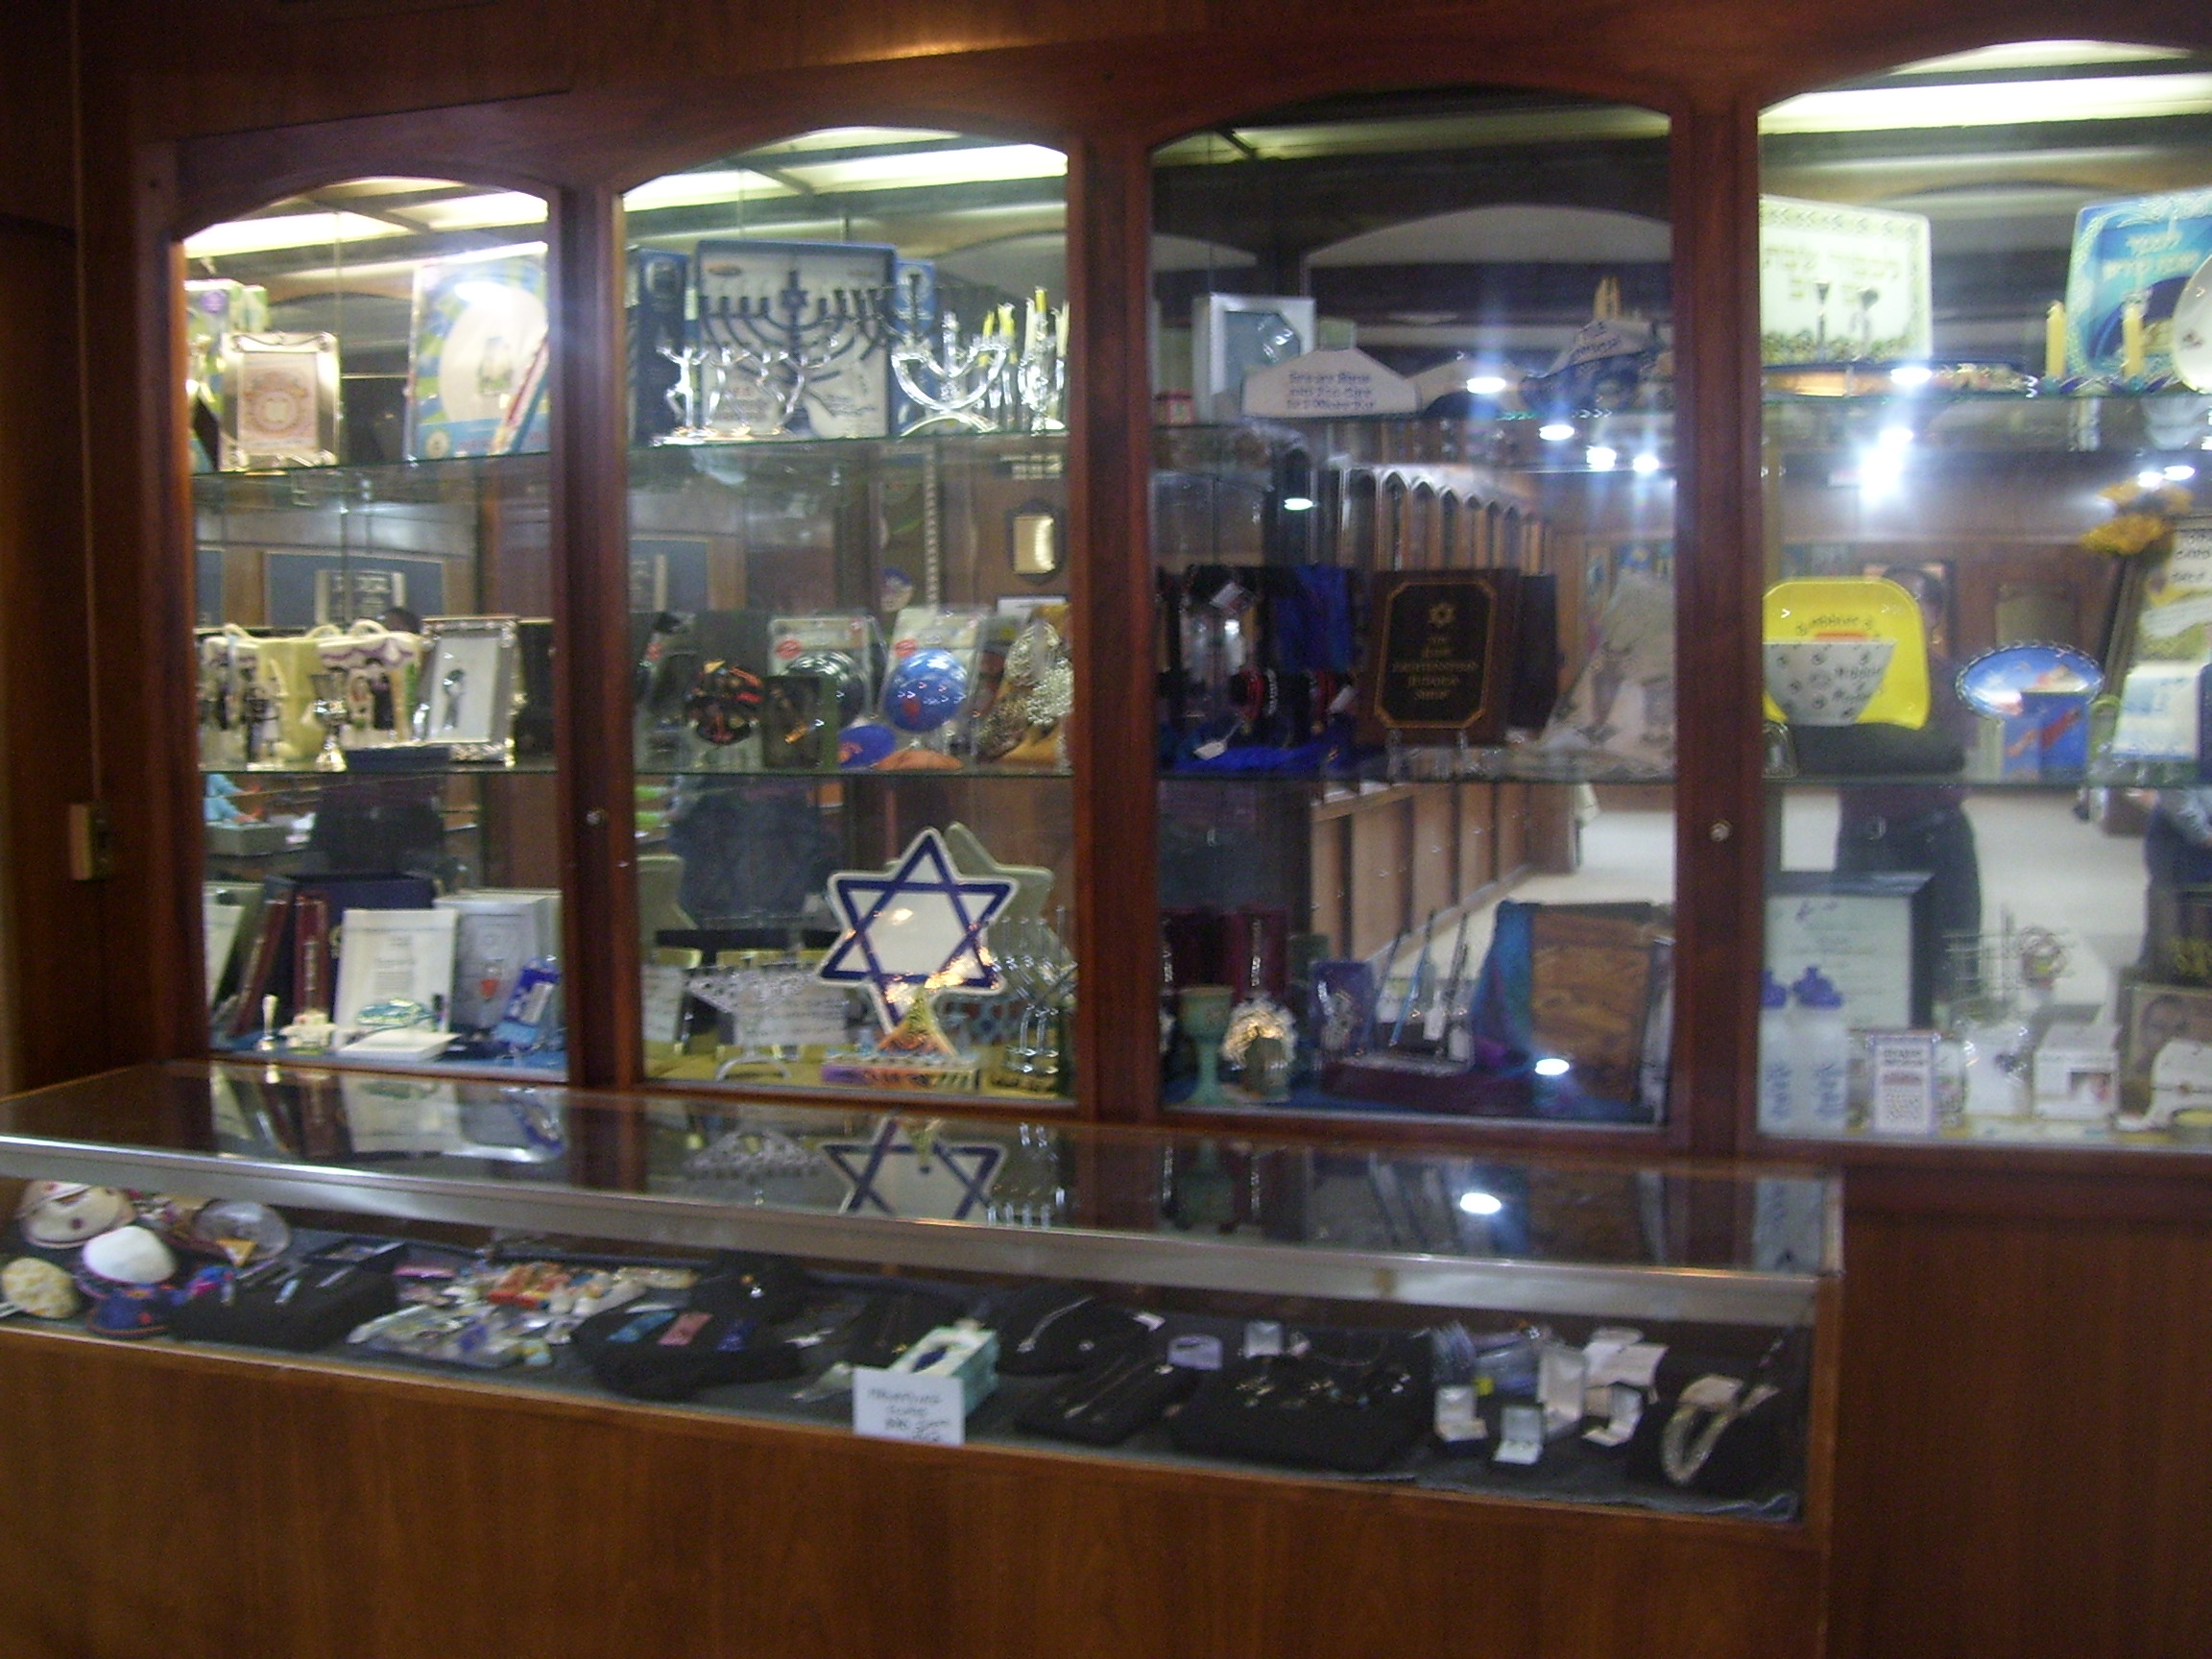 Judaic Shop